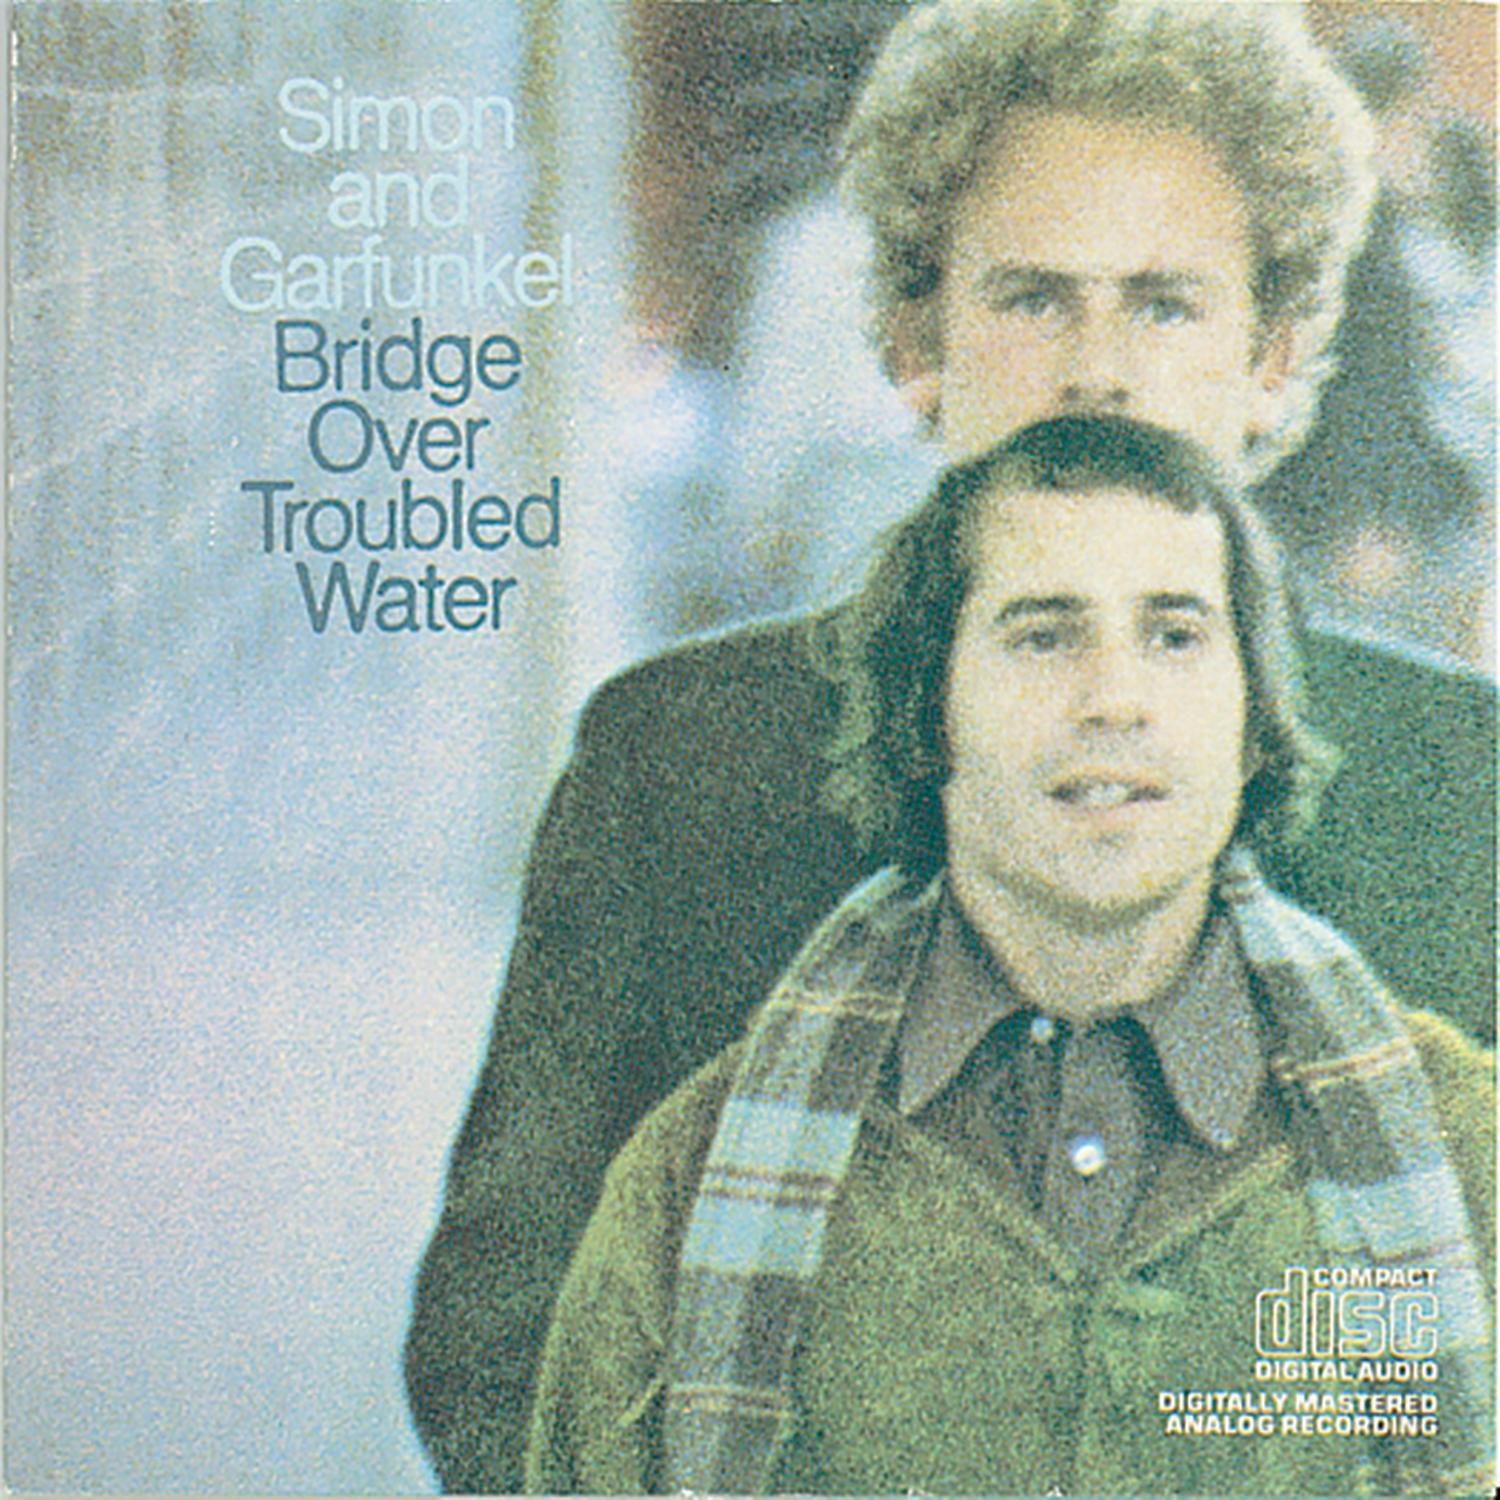 Image result for bridge over troubled water simon and garfunkel  images